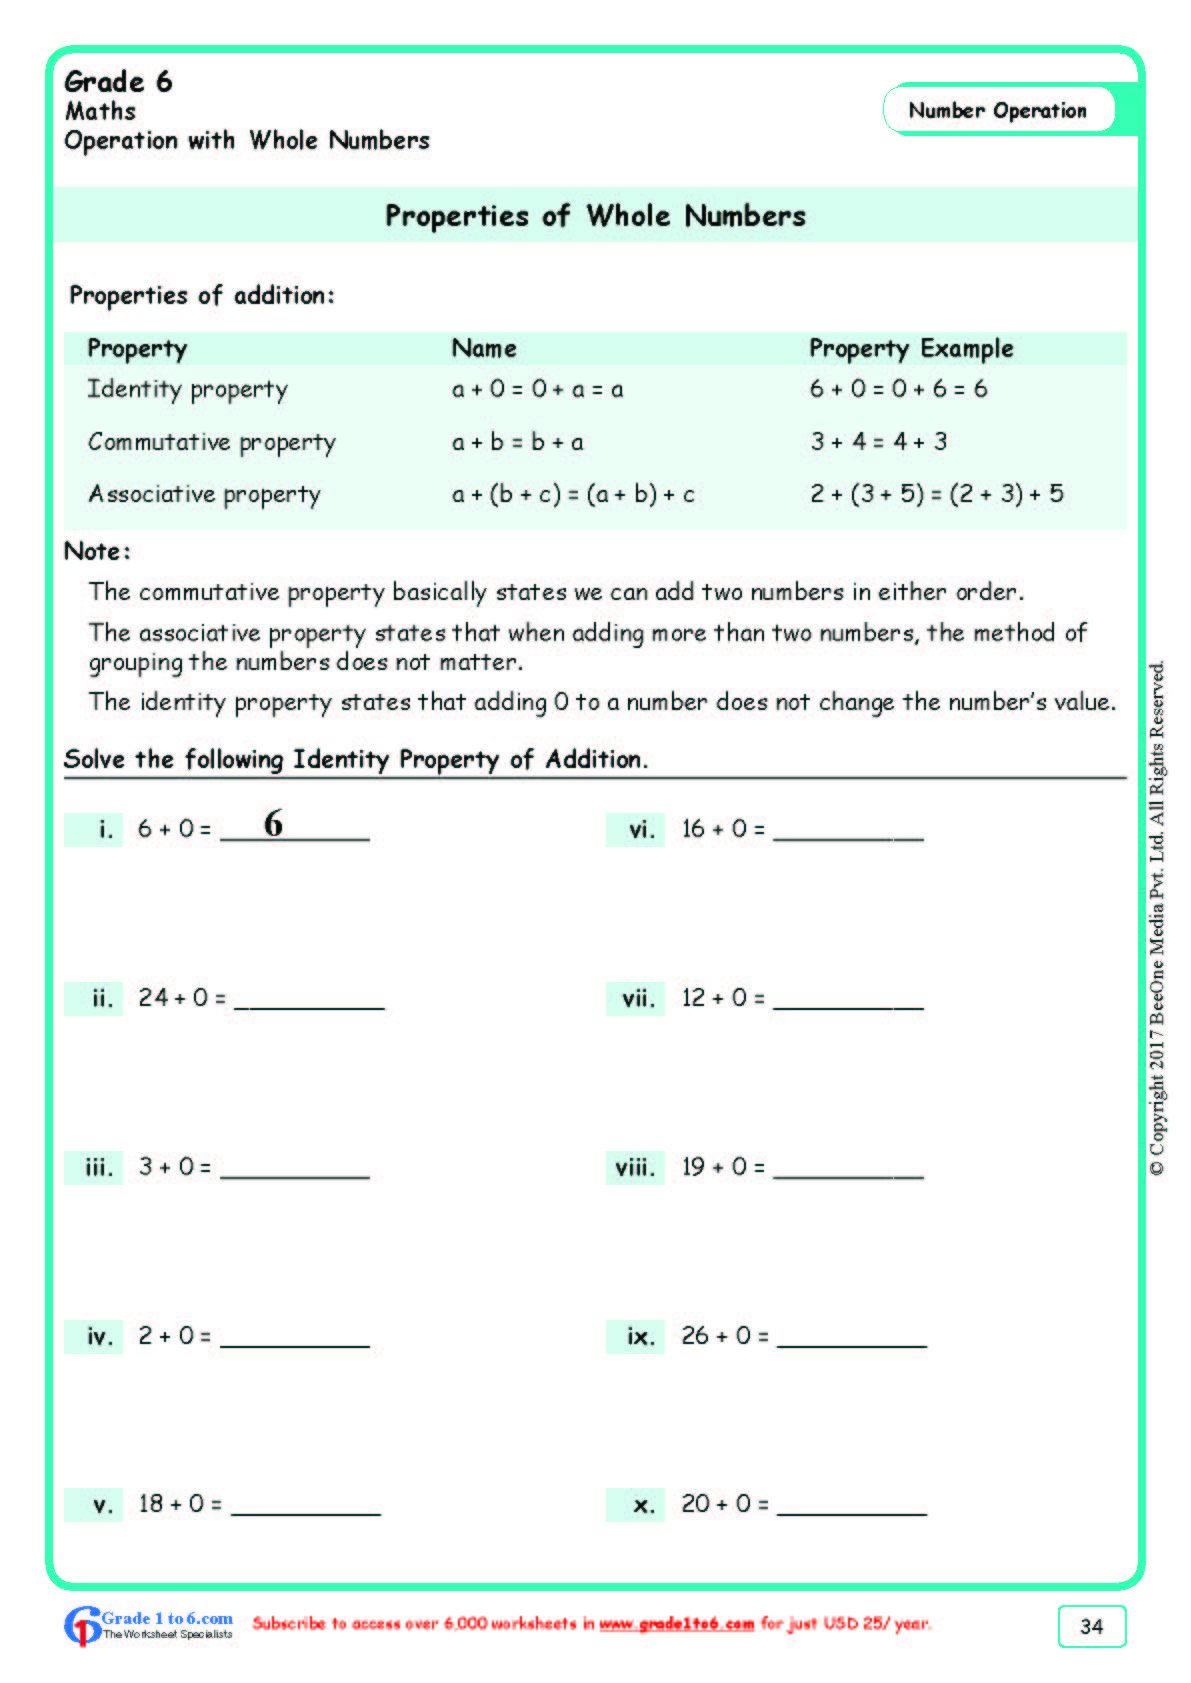 Worksheet Grade 6 Math Properties Of Whole Numbers In